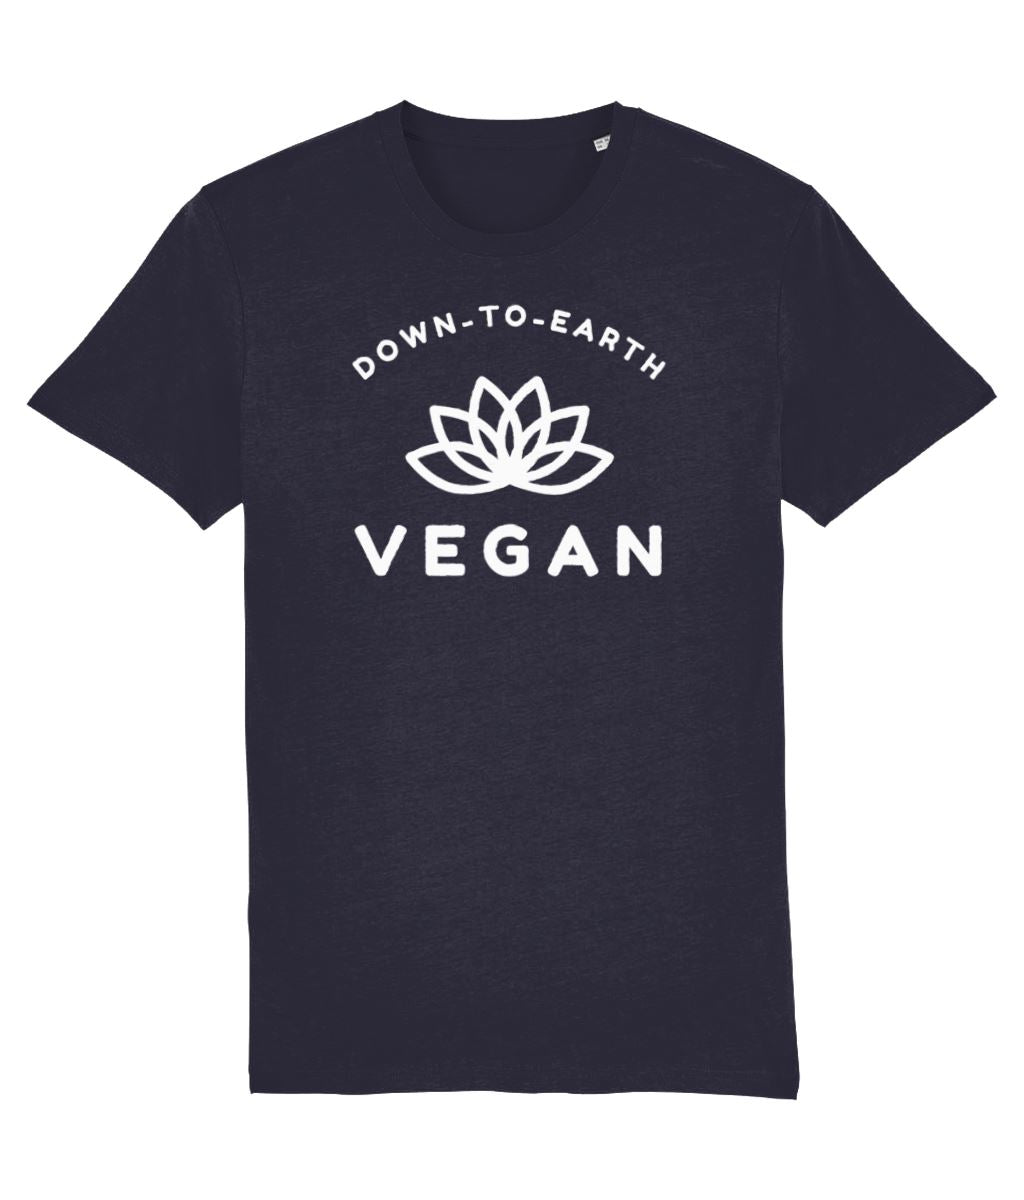 """Down-To-Earth Vegan"" - Those Vegan Guys T-Shirt (Unisex) - Dark Colours Clothing Vegan Original French Navy XX-Small"